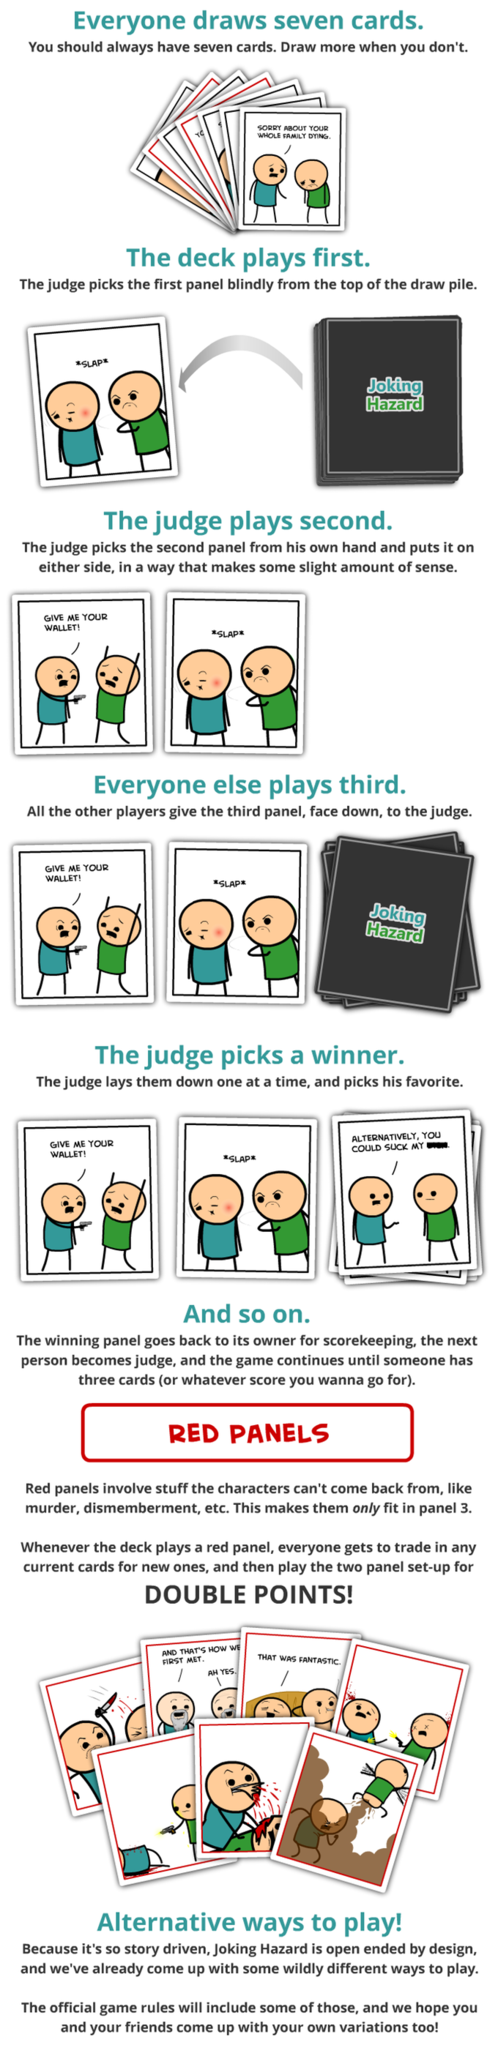 Joking Hazard regler